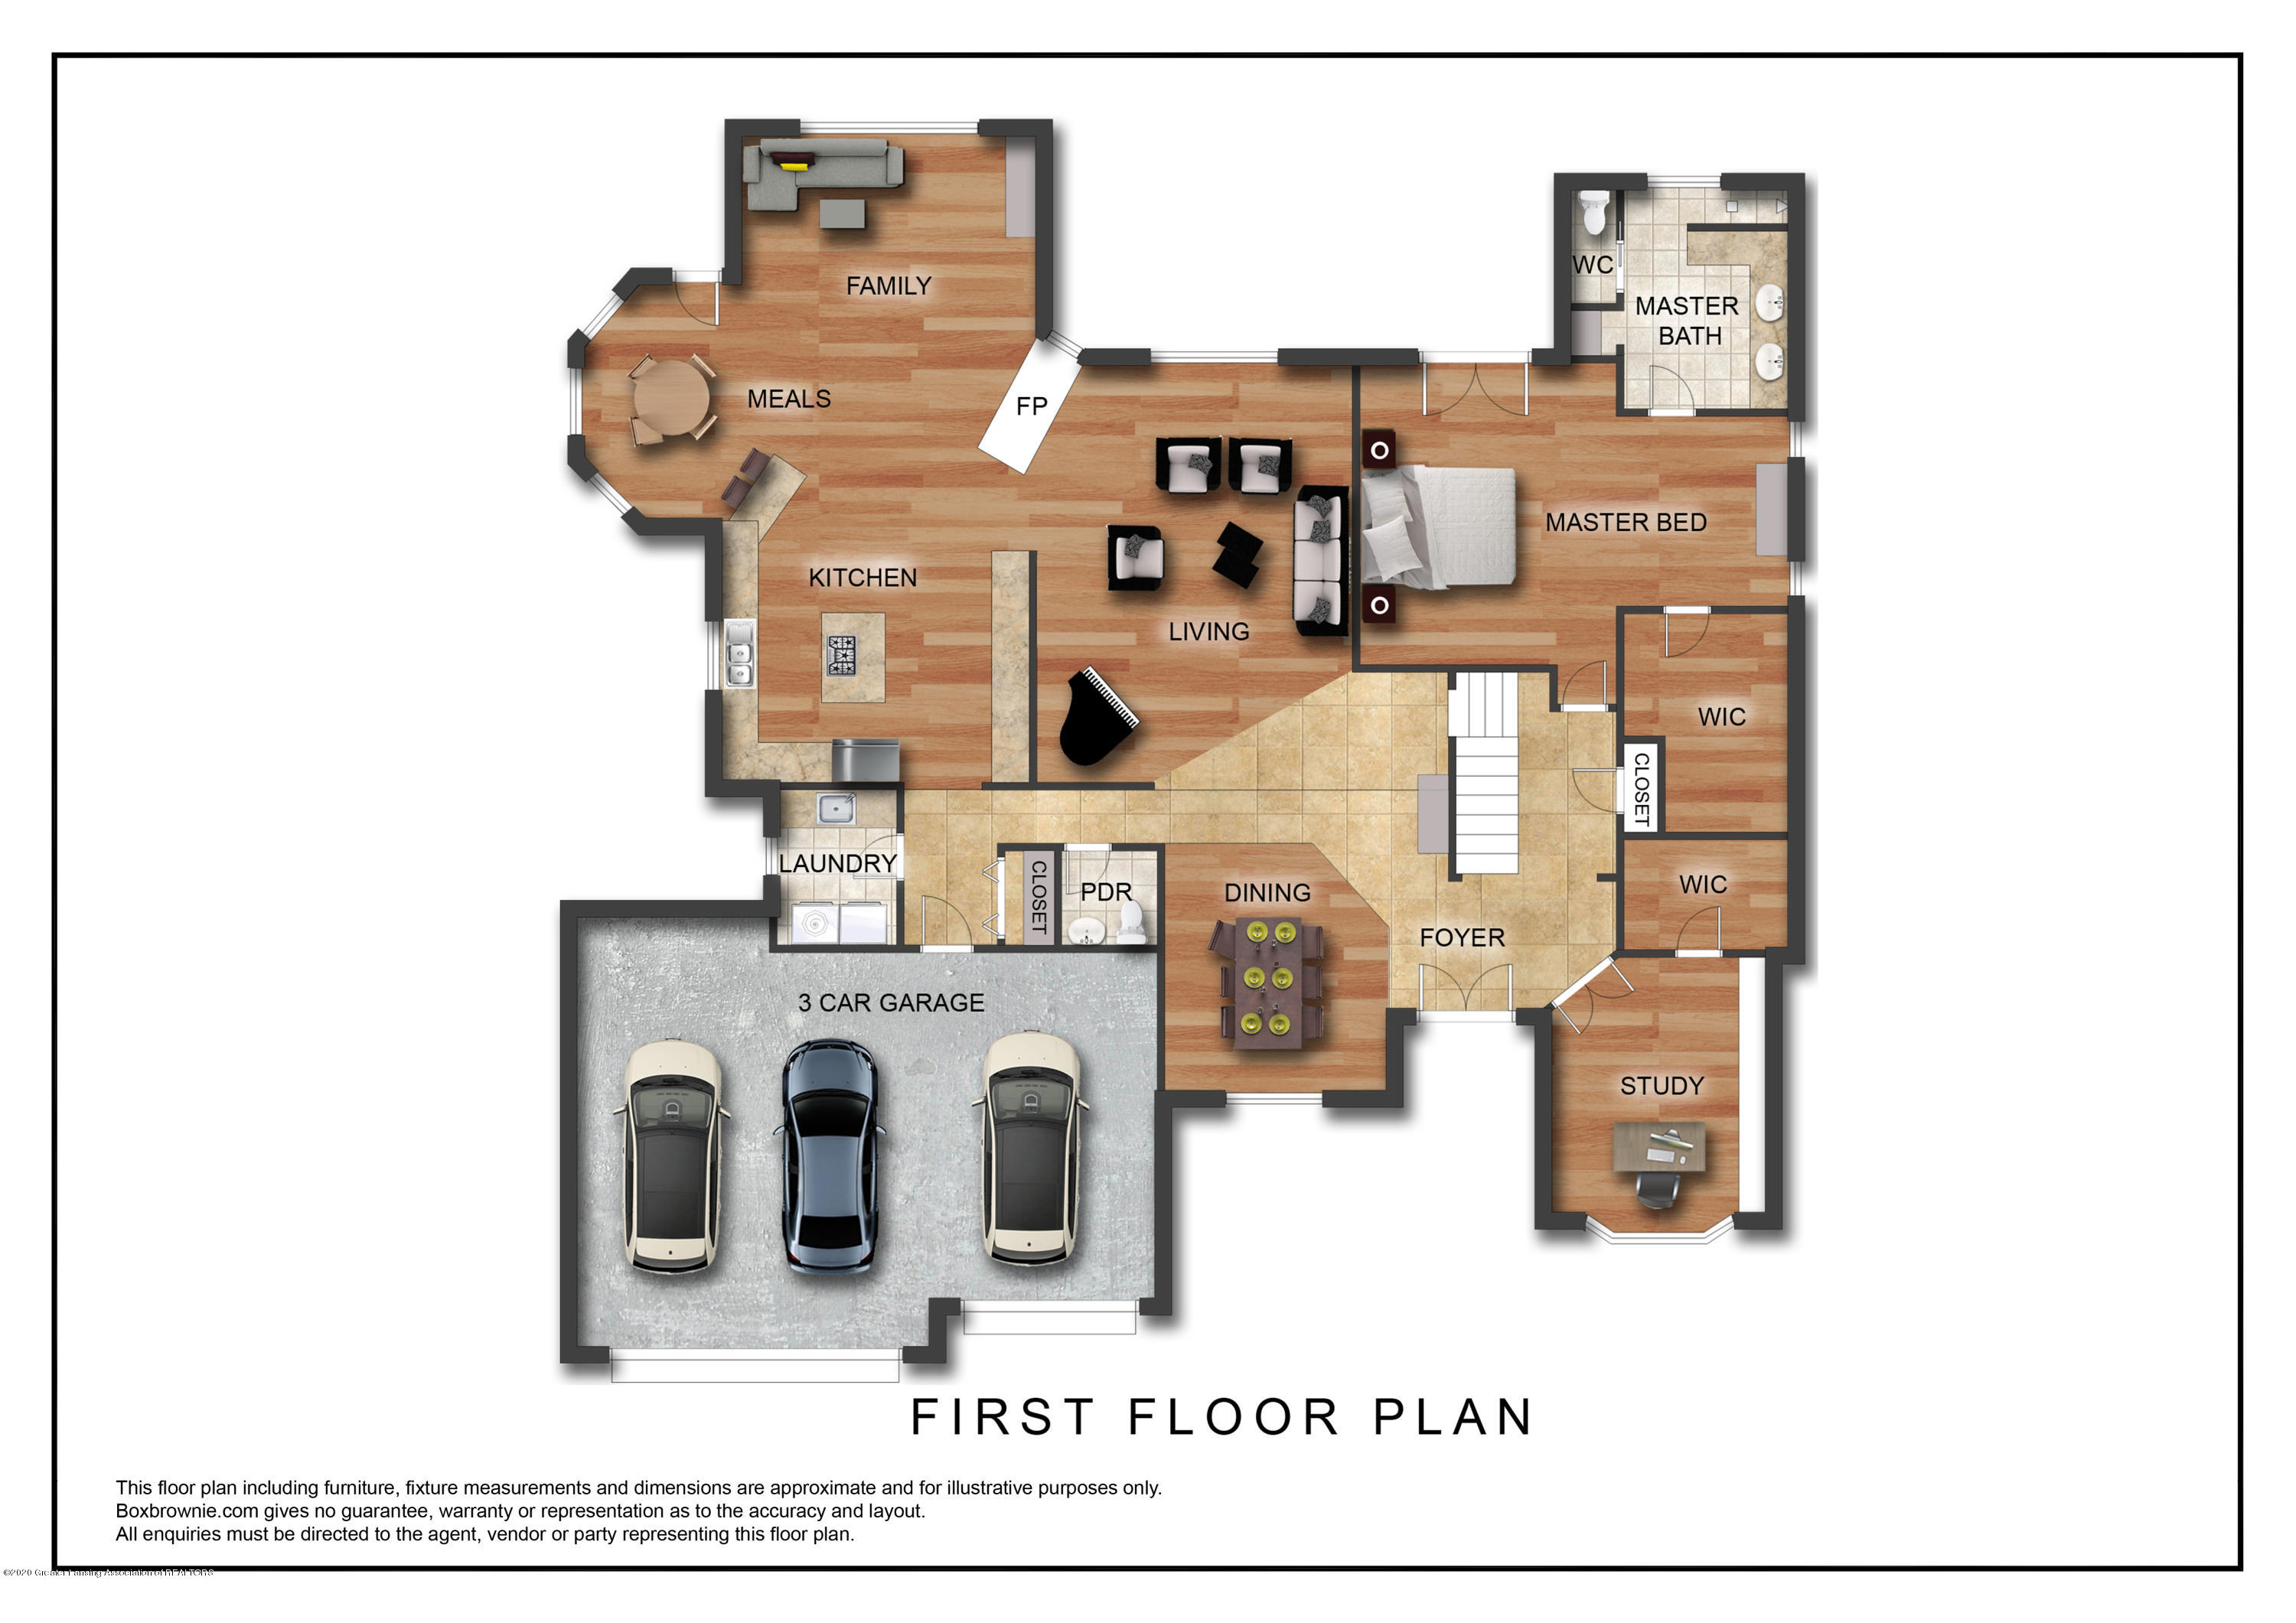 402 Shoreline Dr - First Floor Plan - 7